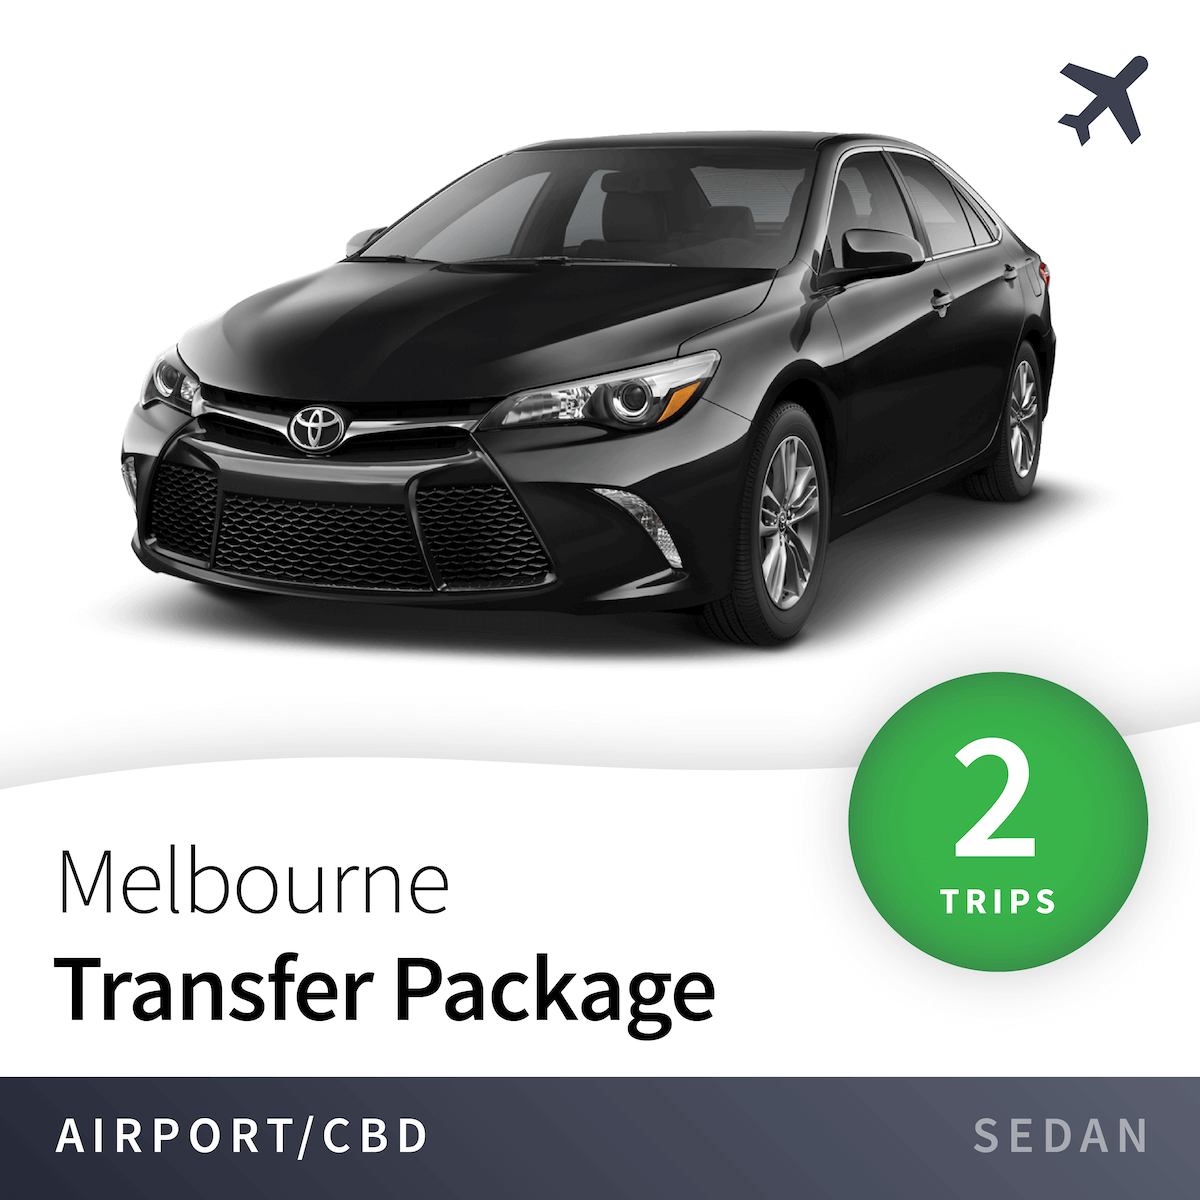 Melbourne Airport Transfer Package - Sedan (2 Trips) 10